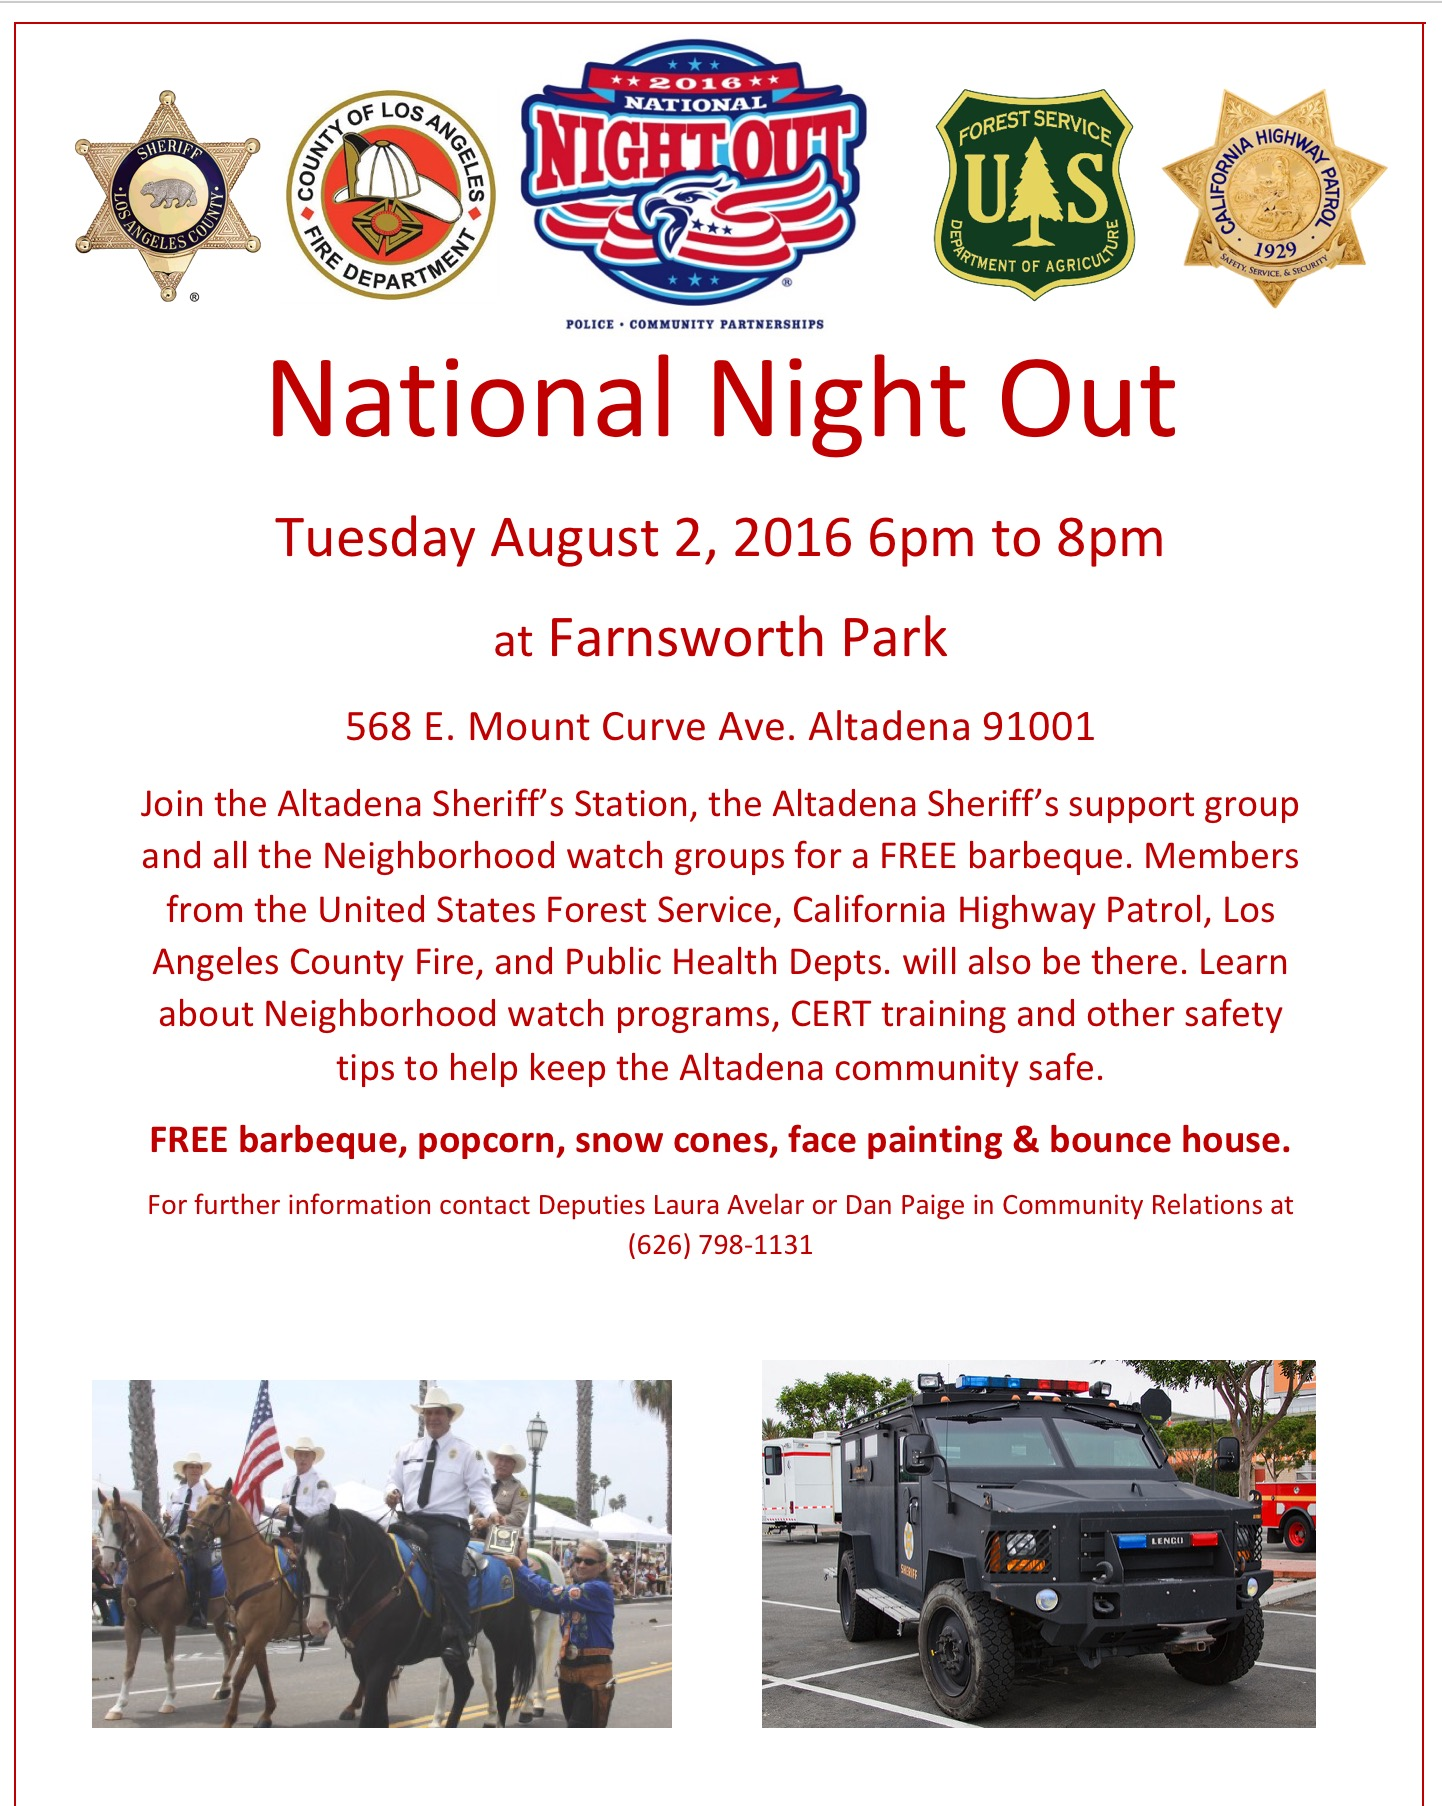 Altadena Sheriff's Station hosting National Night Out at Farnsworth Park